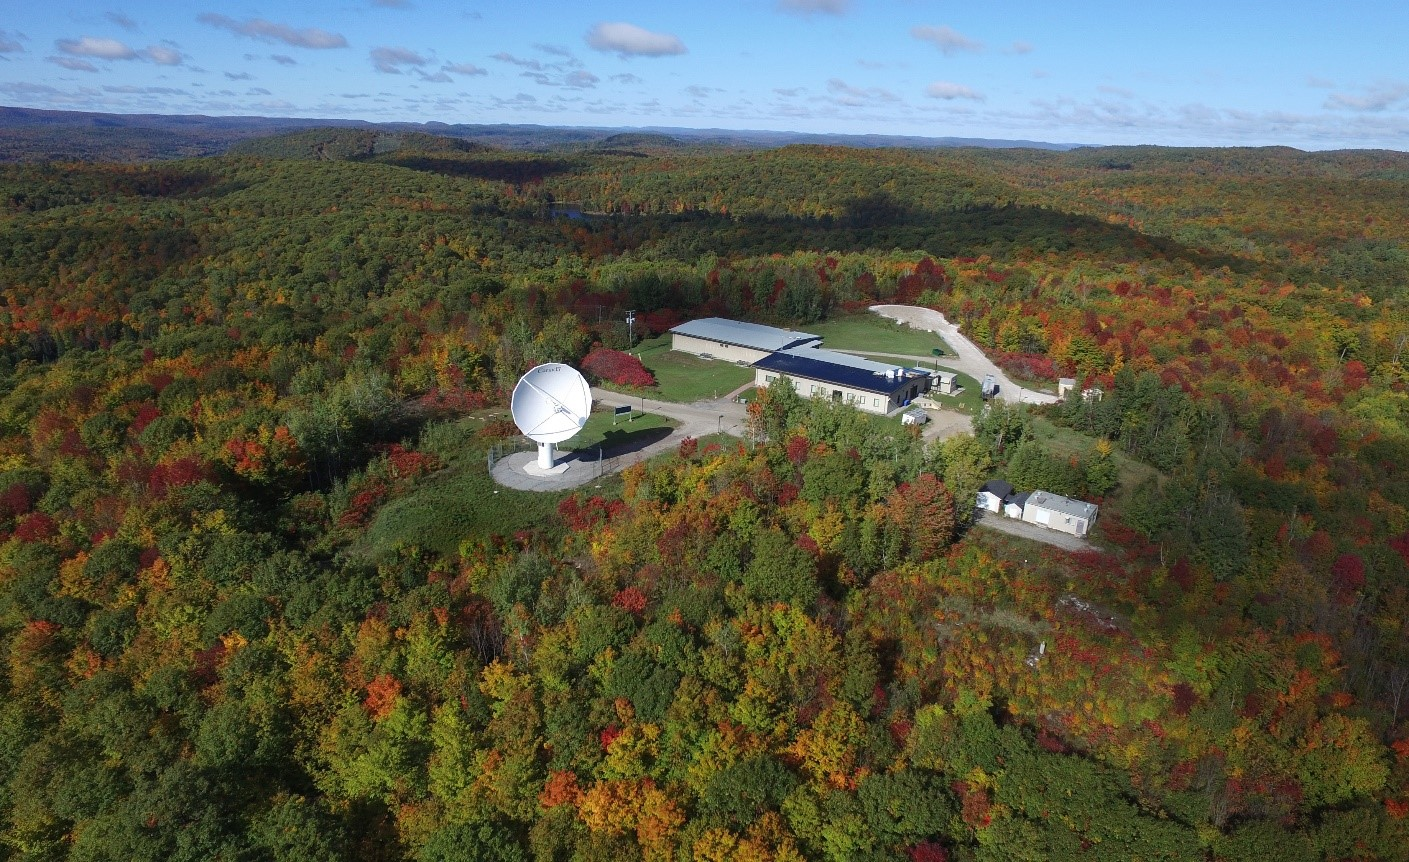 This image shows the Gatineau Satellite Station with 2 dish antennas and two buildings